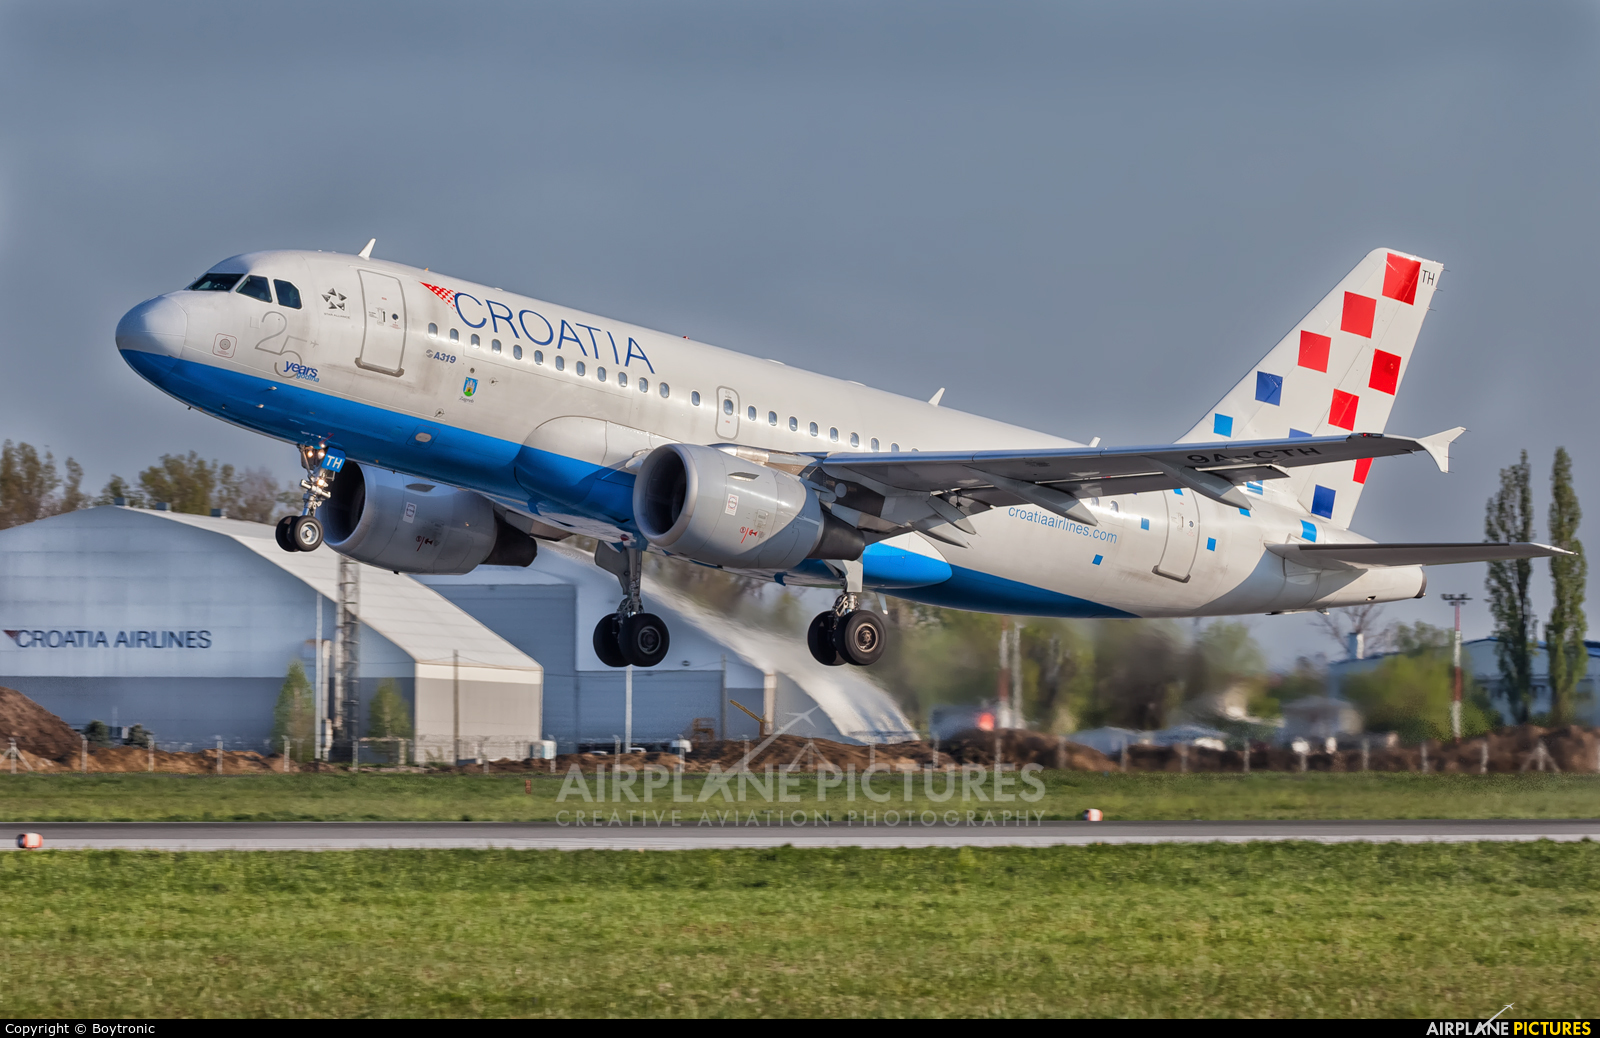 Croatia Airlines 9A-CTH aircraft at Zagreb